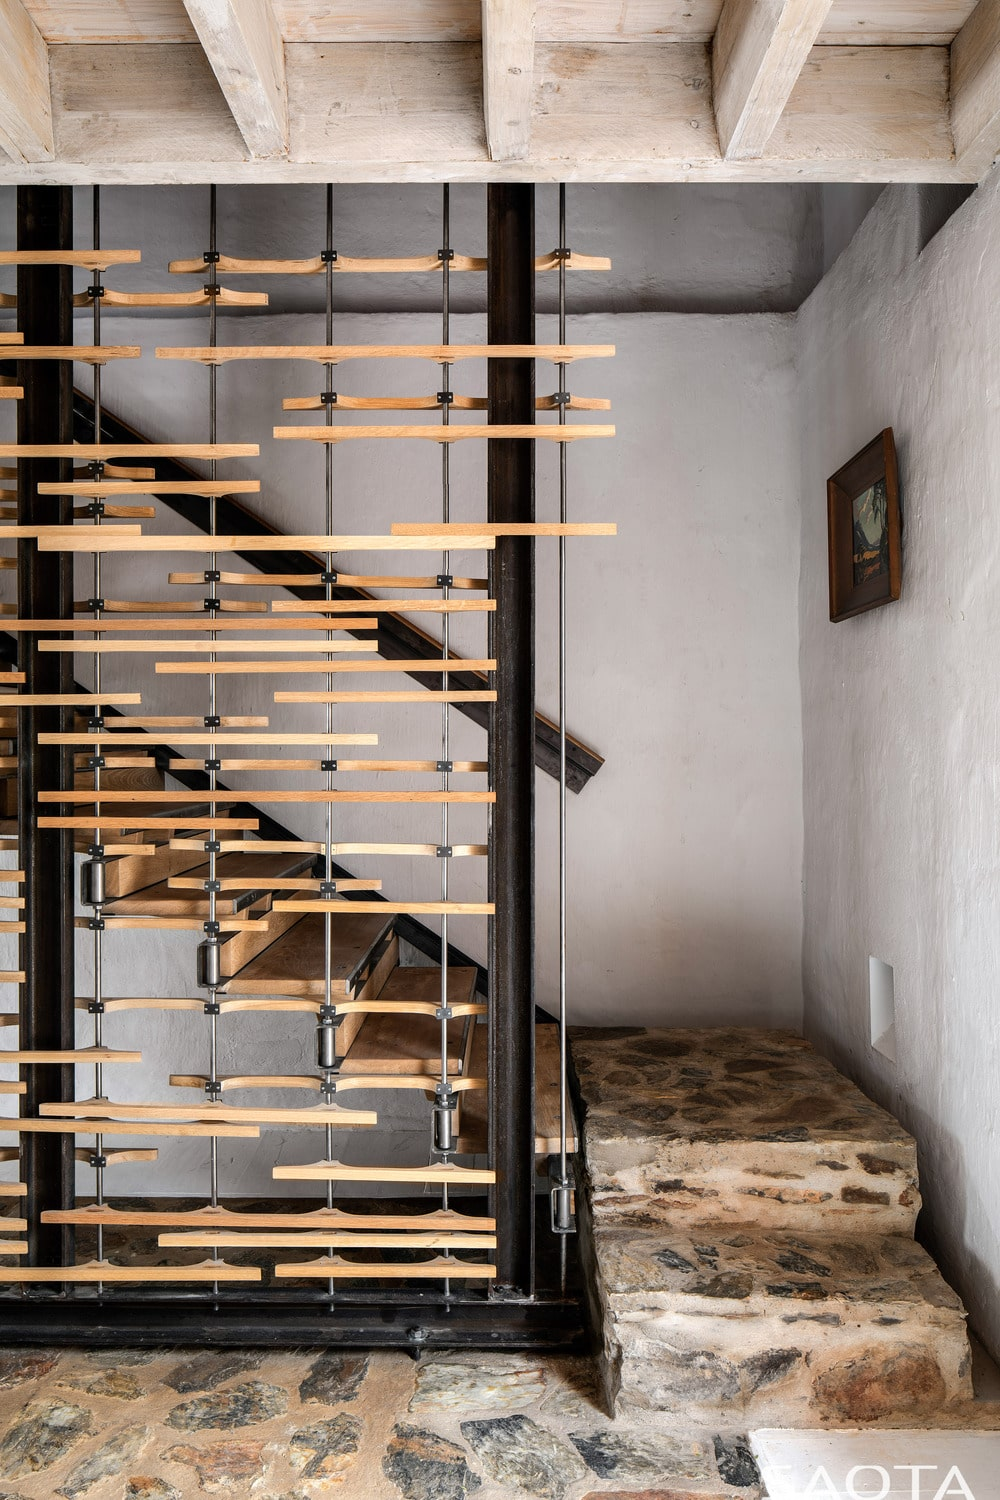 This is a close look at the stair case with steps that match the mosaic rustic stone floor adorned with wooden accents on the side.